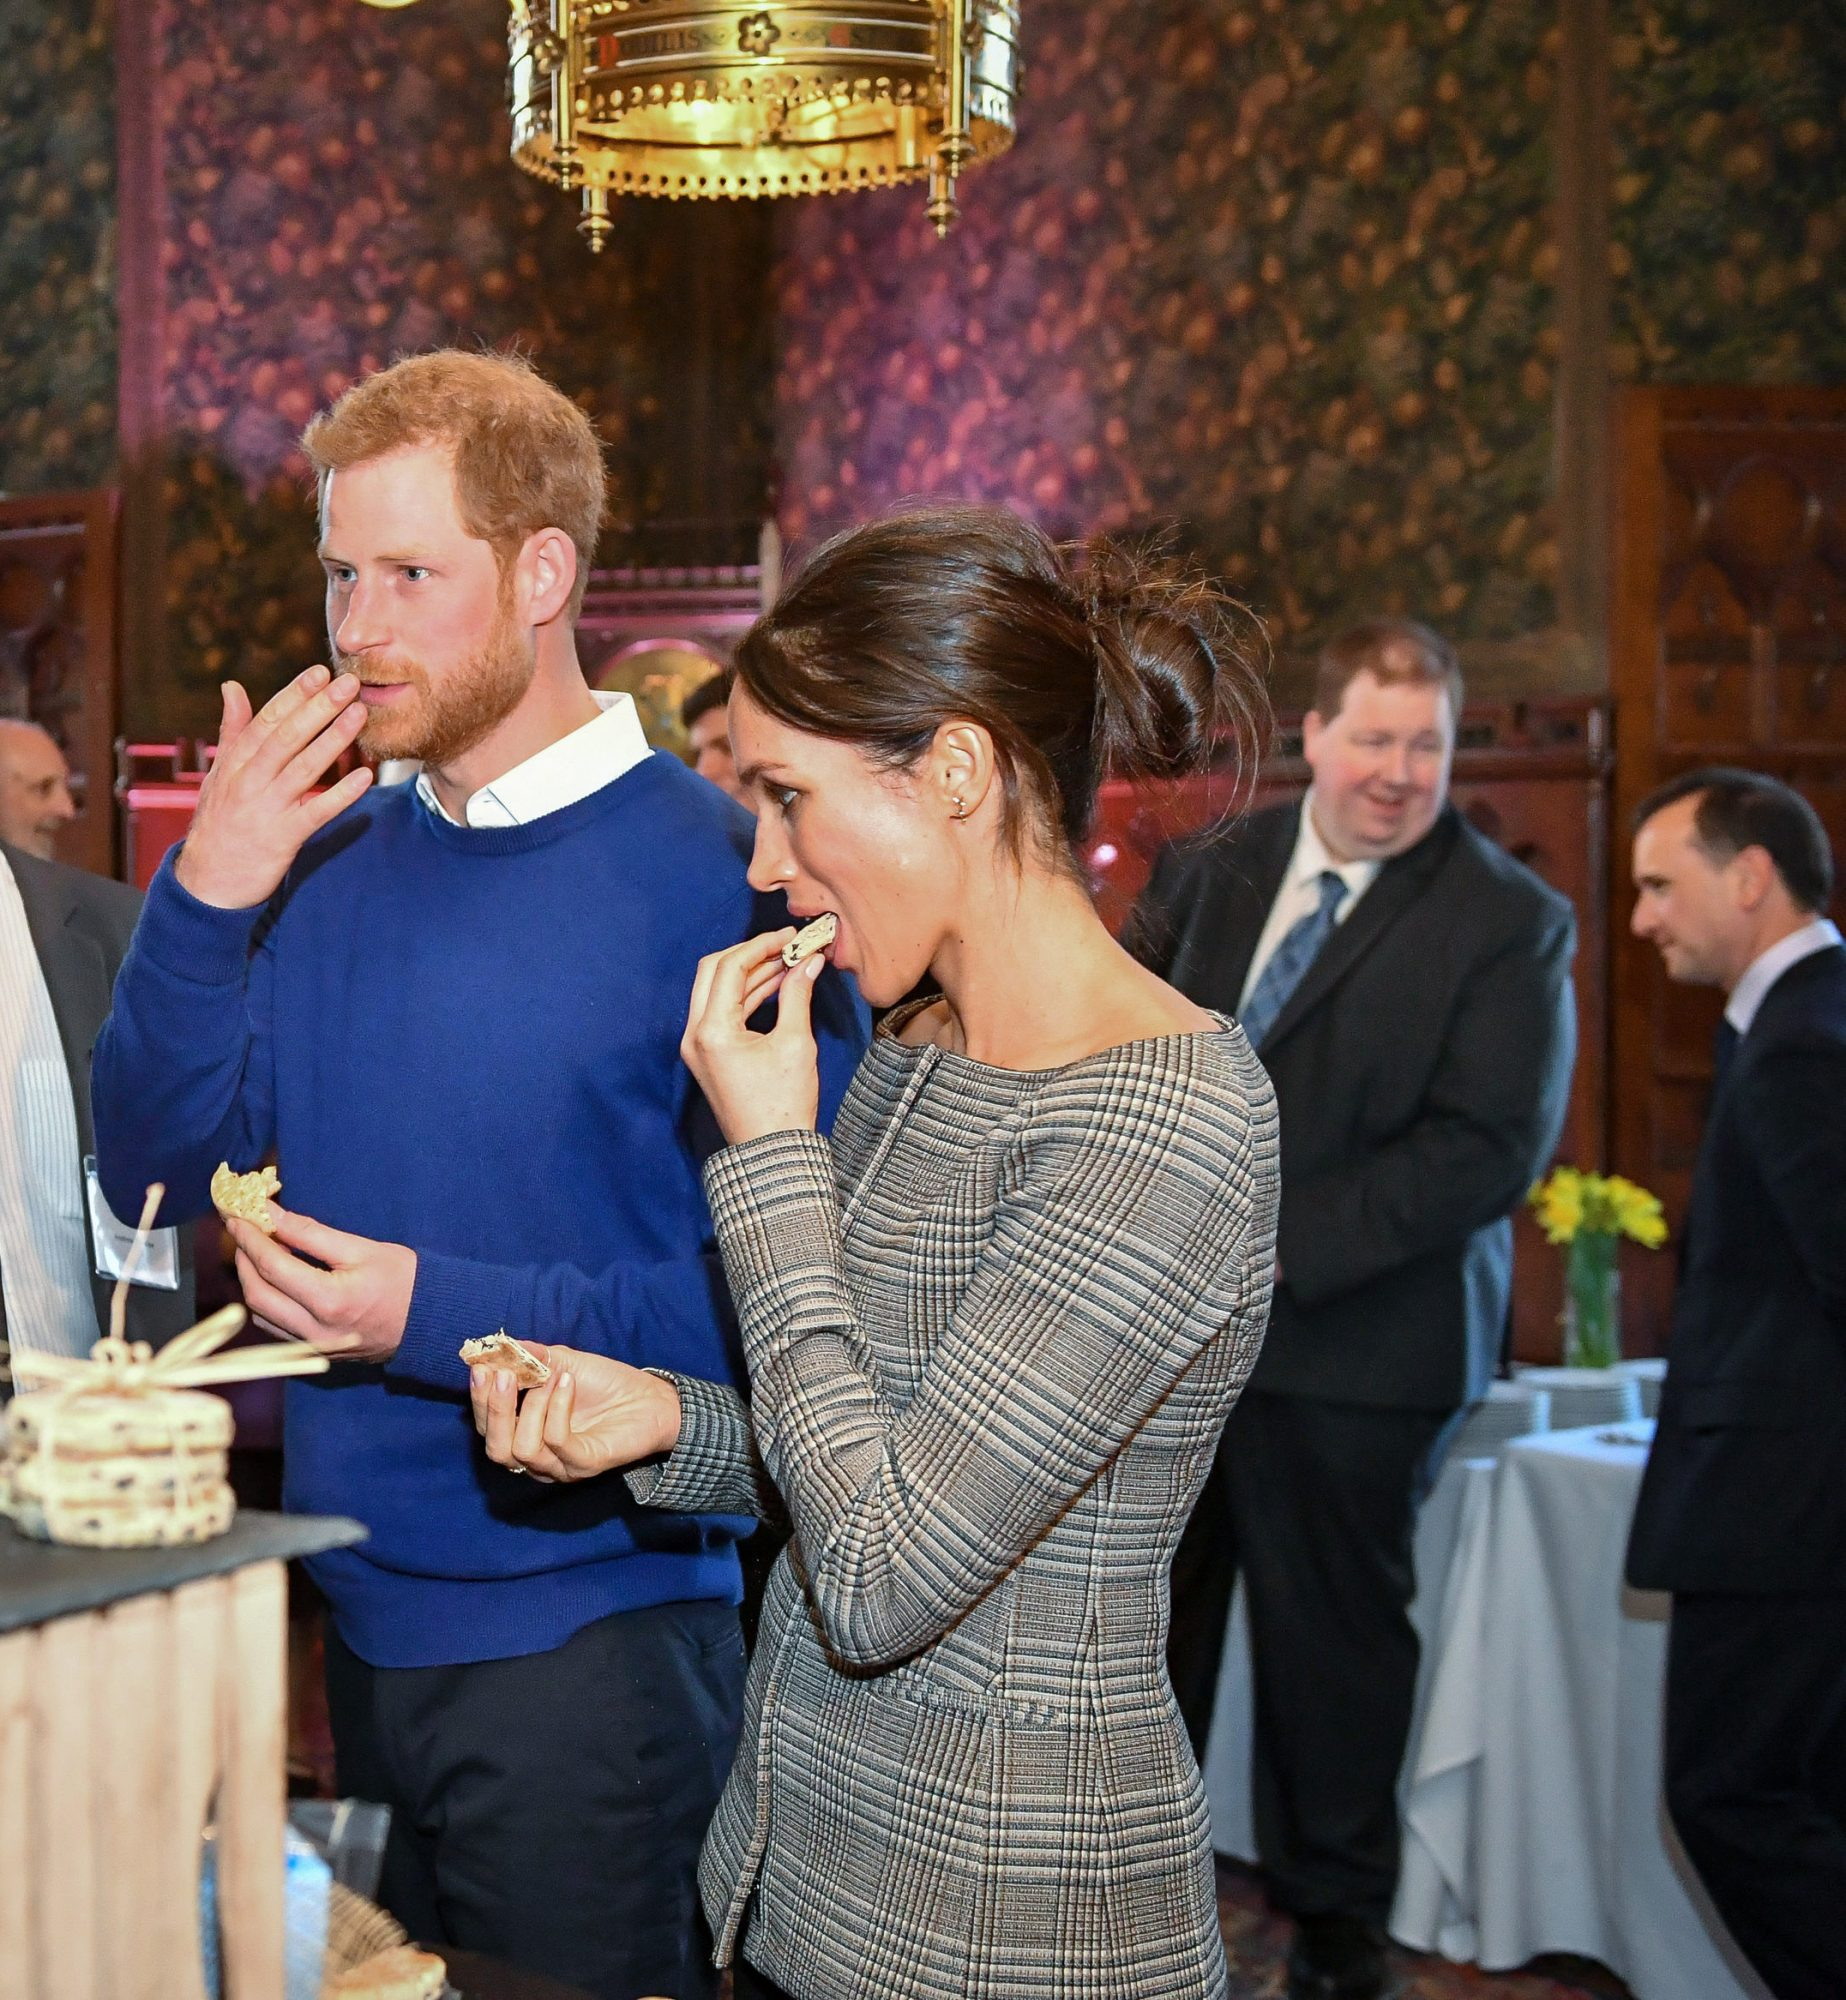 Prince Harry Meghan Markle Eating Cake